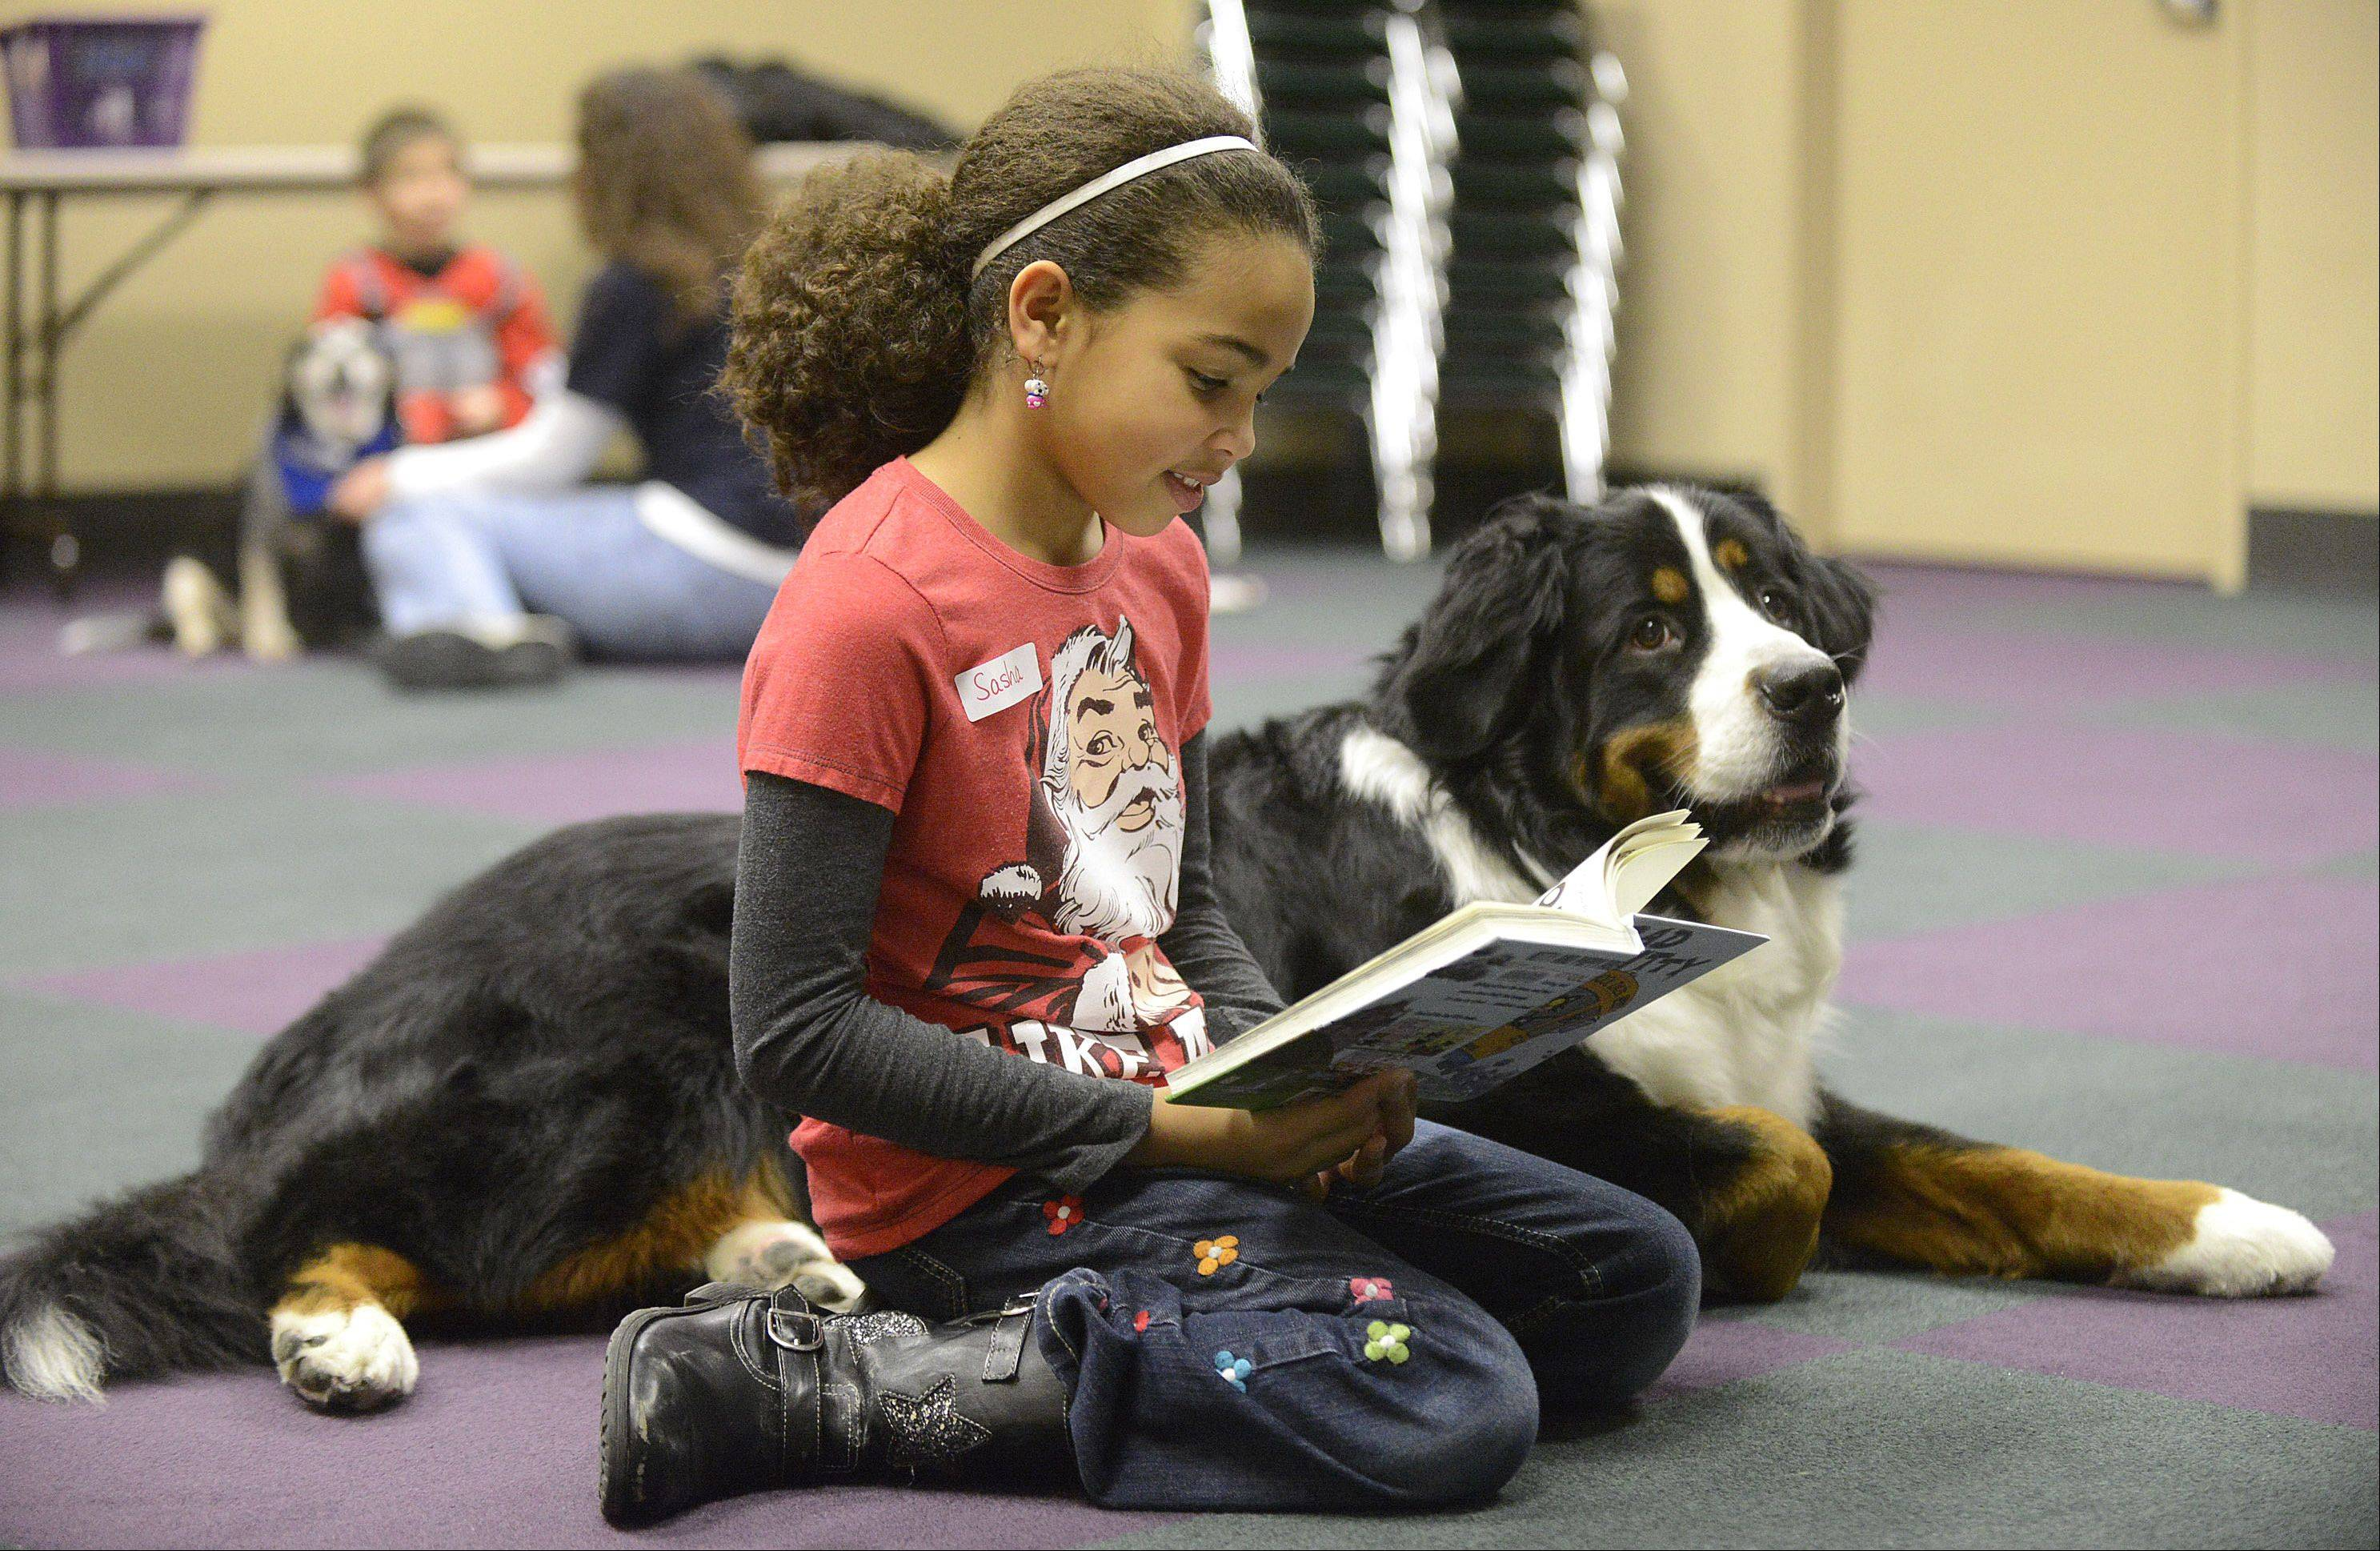 Sasha Mix, 8, of Batavia reads to Bozeman, 5, owned by Gail Banning of Aurora at Batavia Public Library�s Paws for Tales reading program on Saturday. This is the fourth time the group has been to the library, but Sasha�s first time reading to a dog.